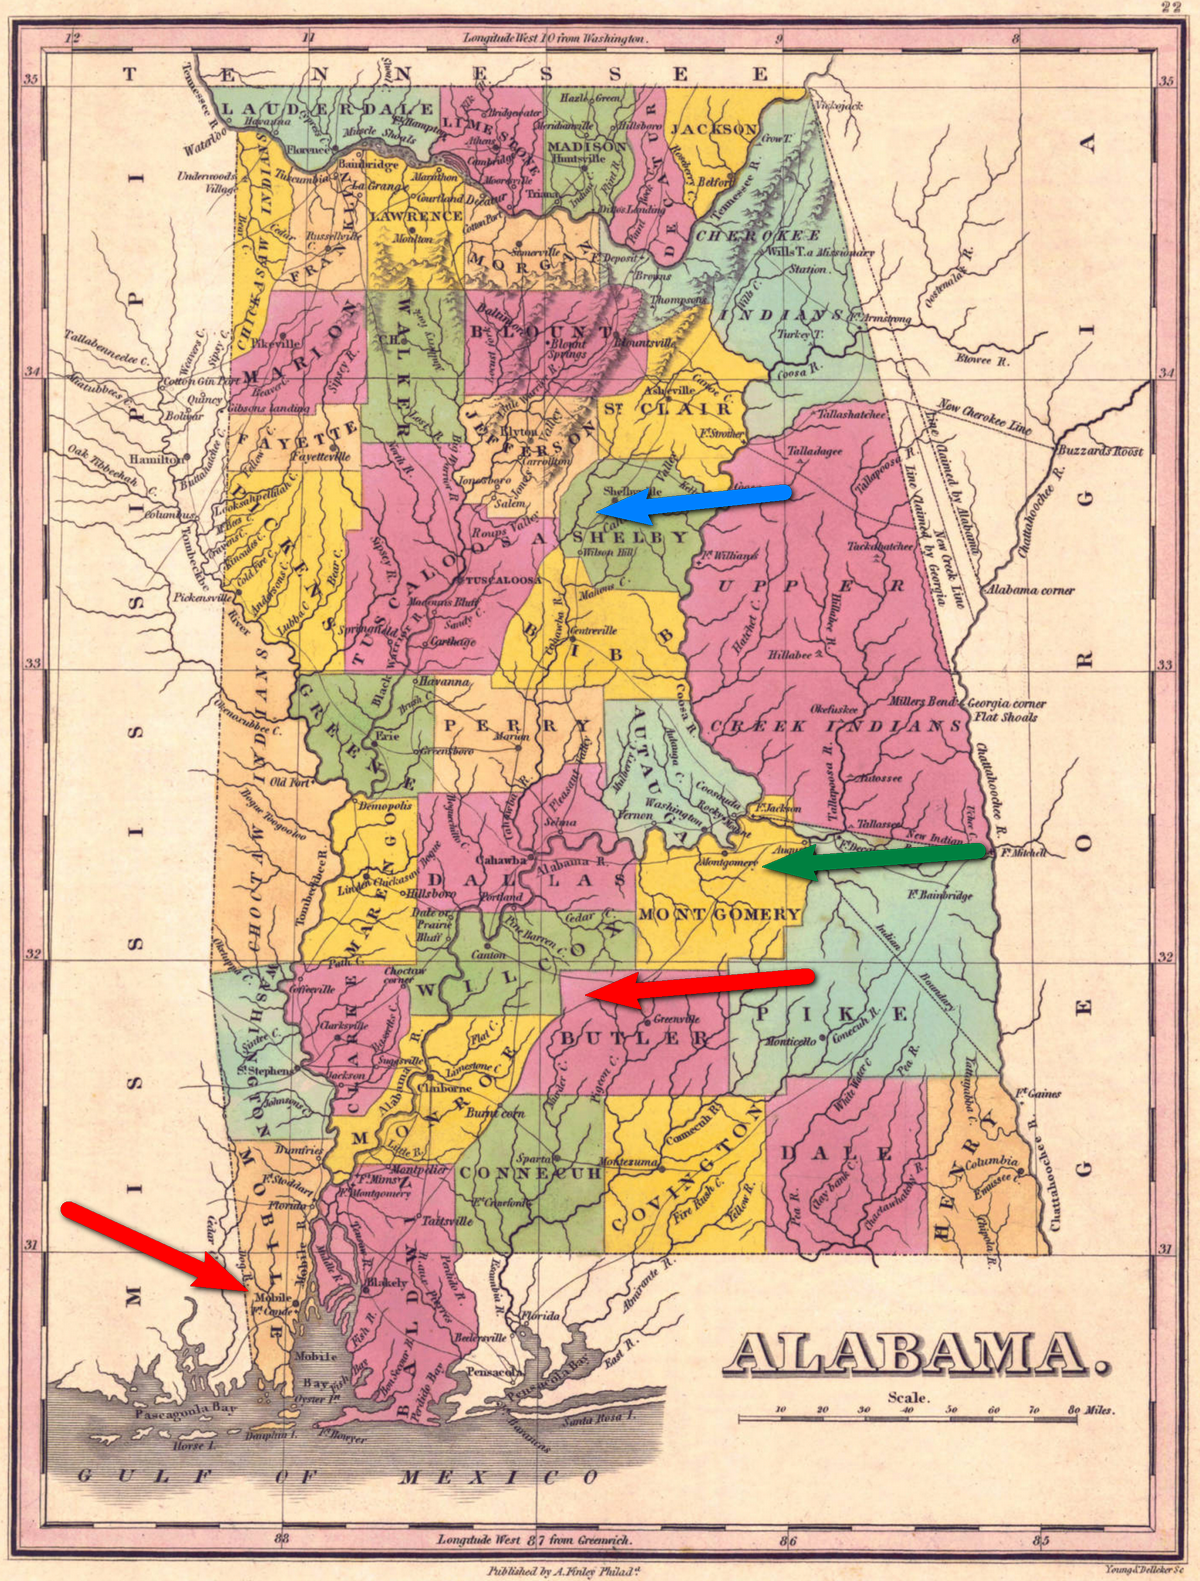 1833-map-of-alabama-with-lines